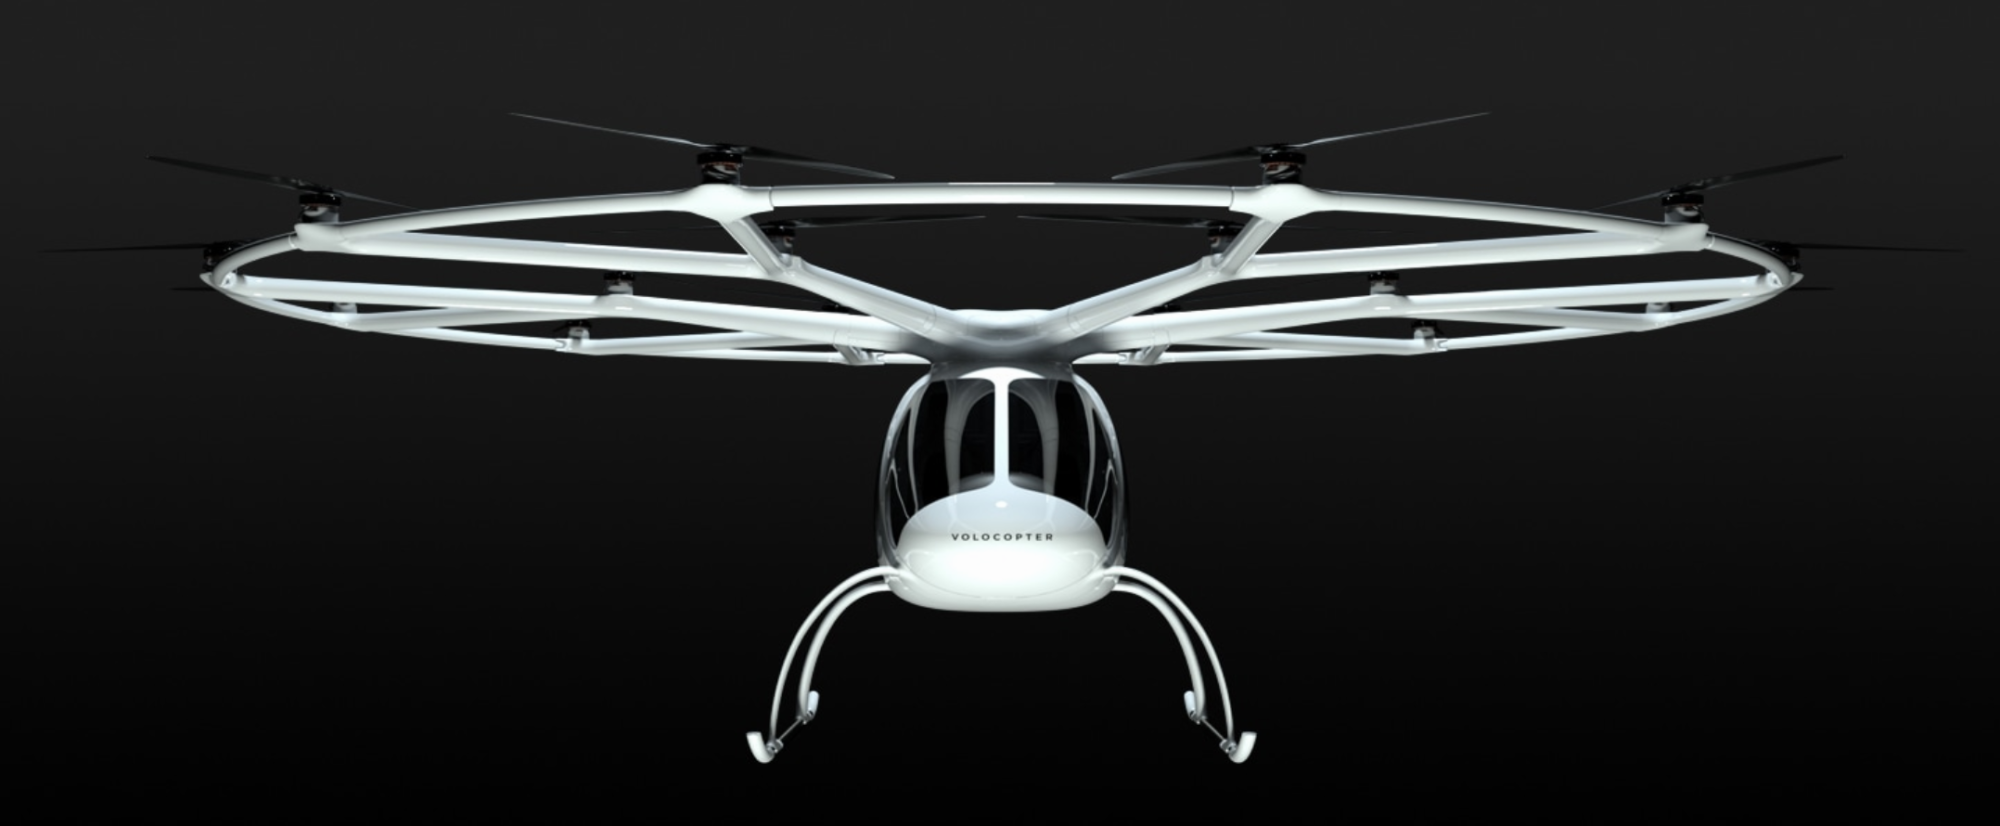 Volocopter Flying Taxi